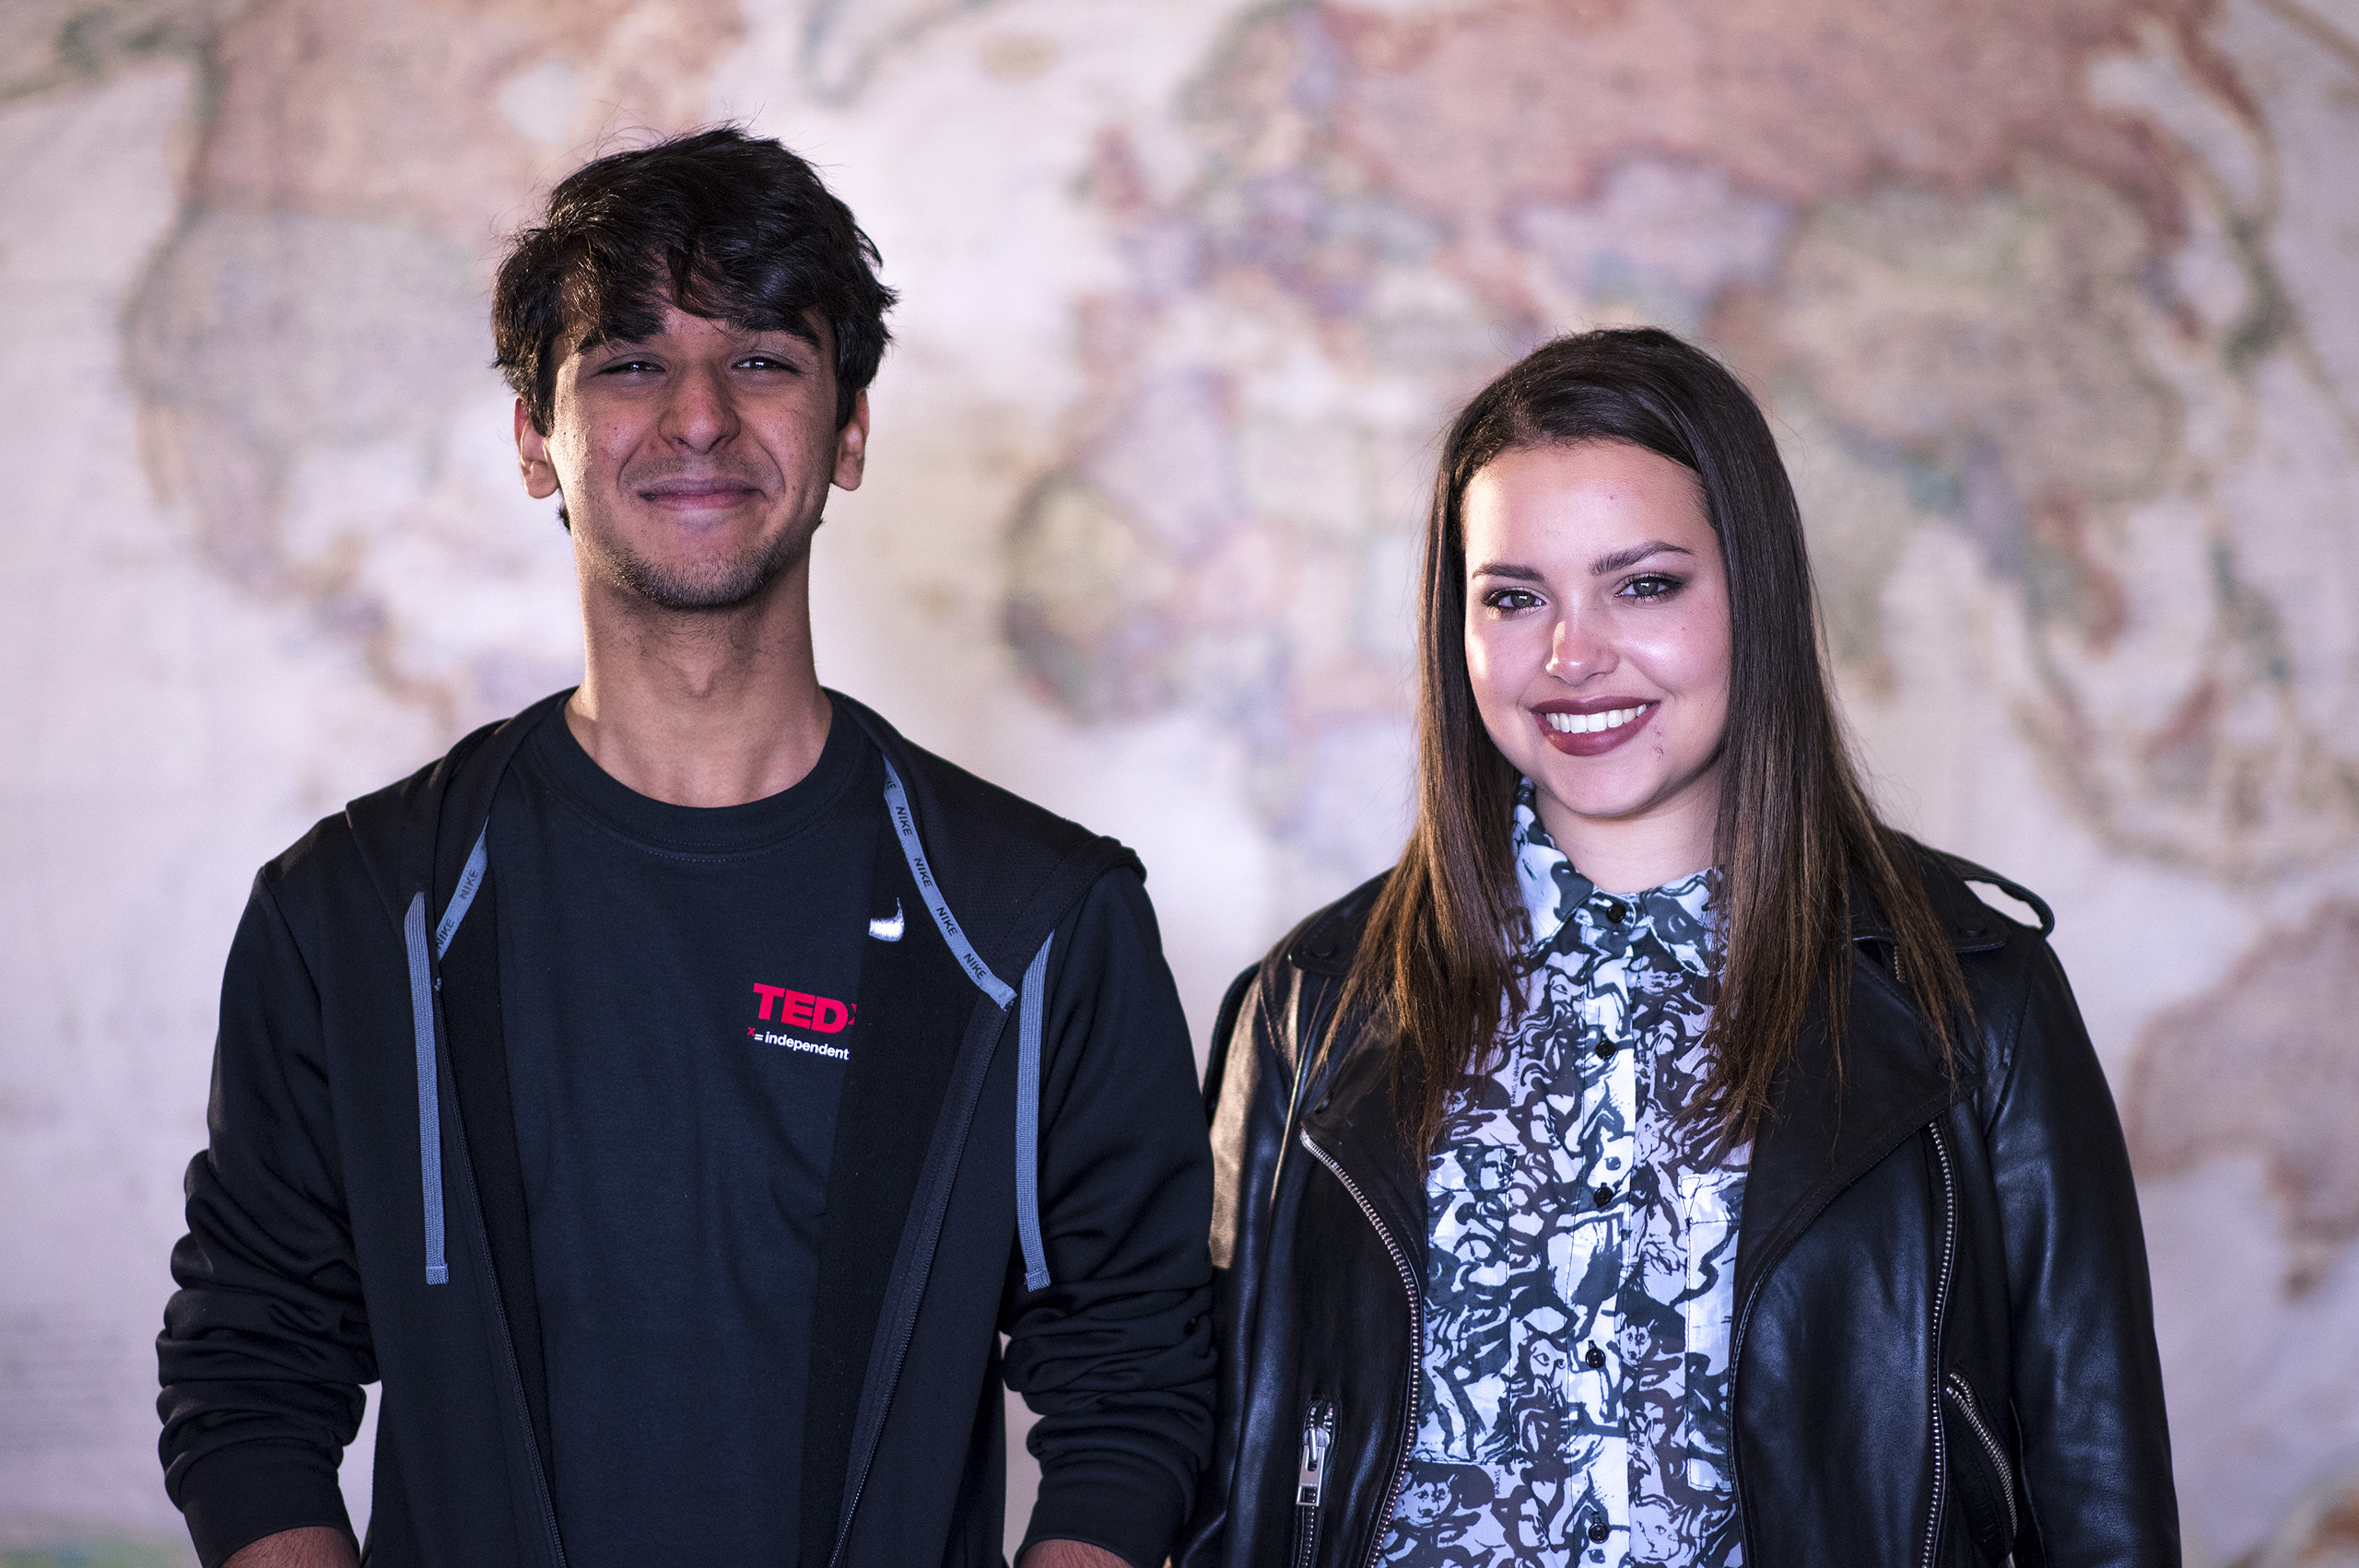 Mihir Kathpalia and Allison Bouganim dressed in black and standing in front of a large world map